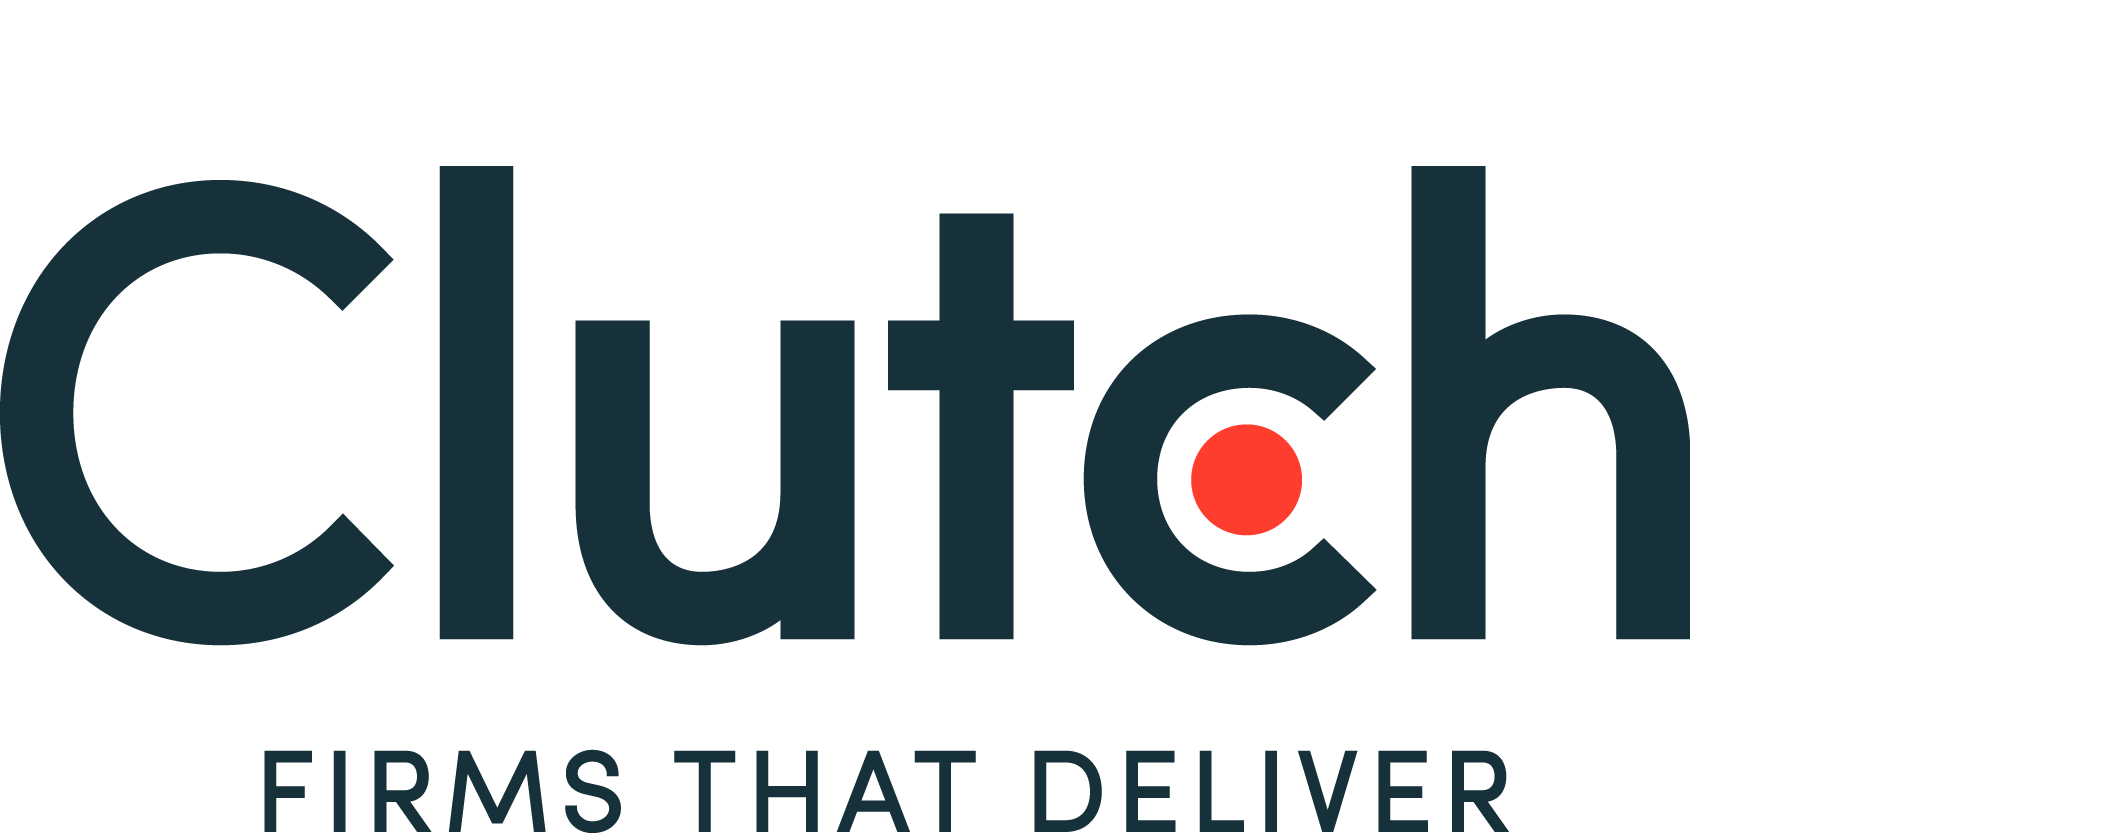 Clutch Publication Logo